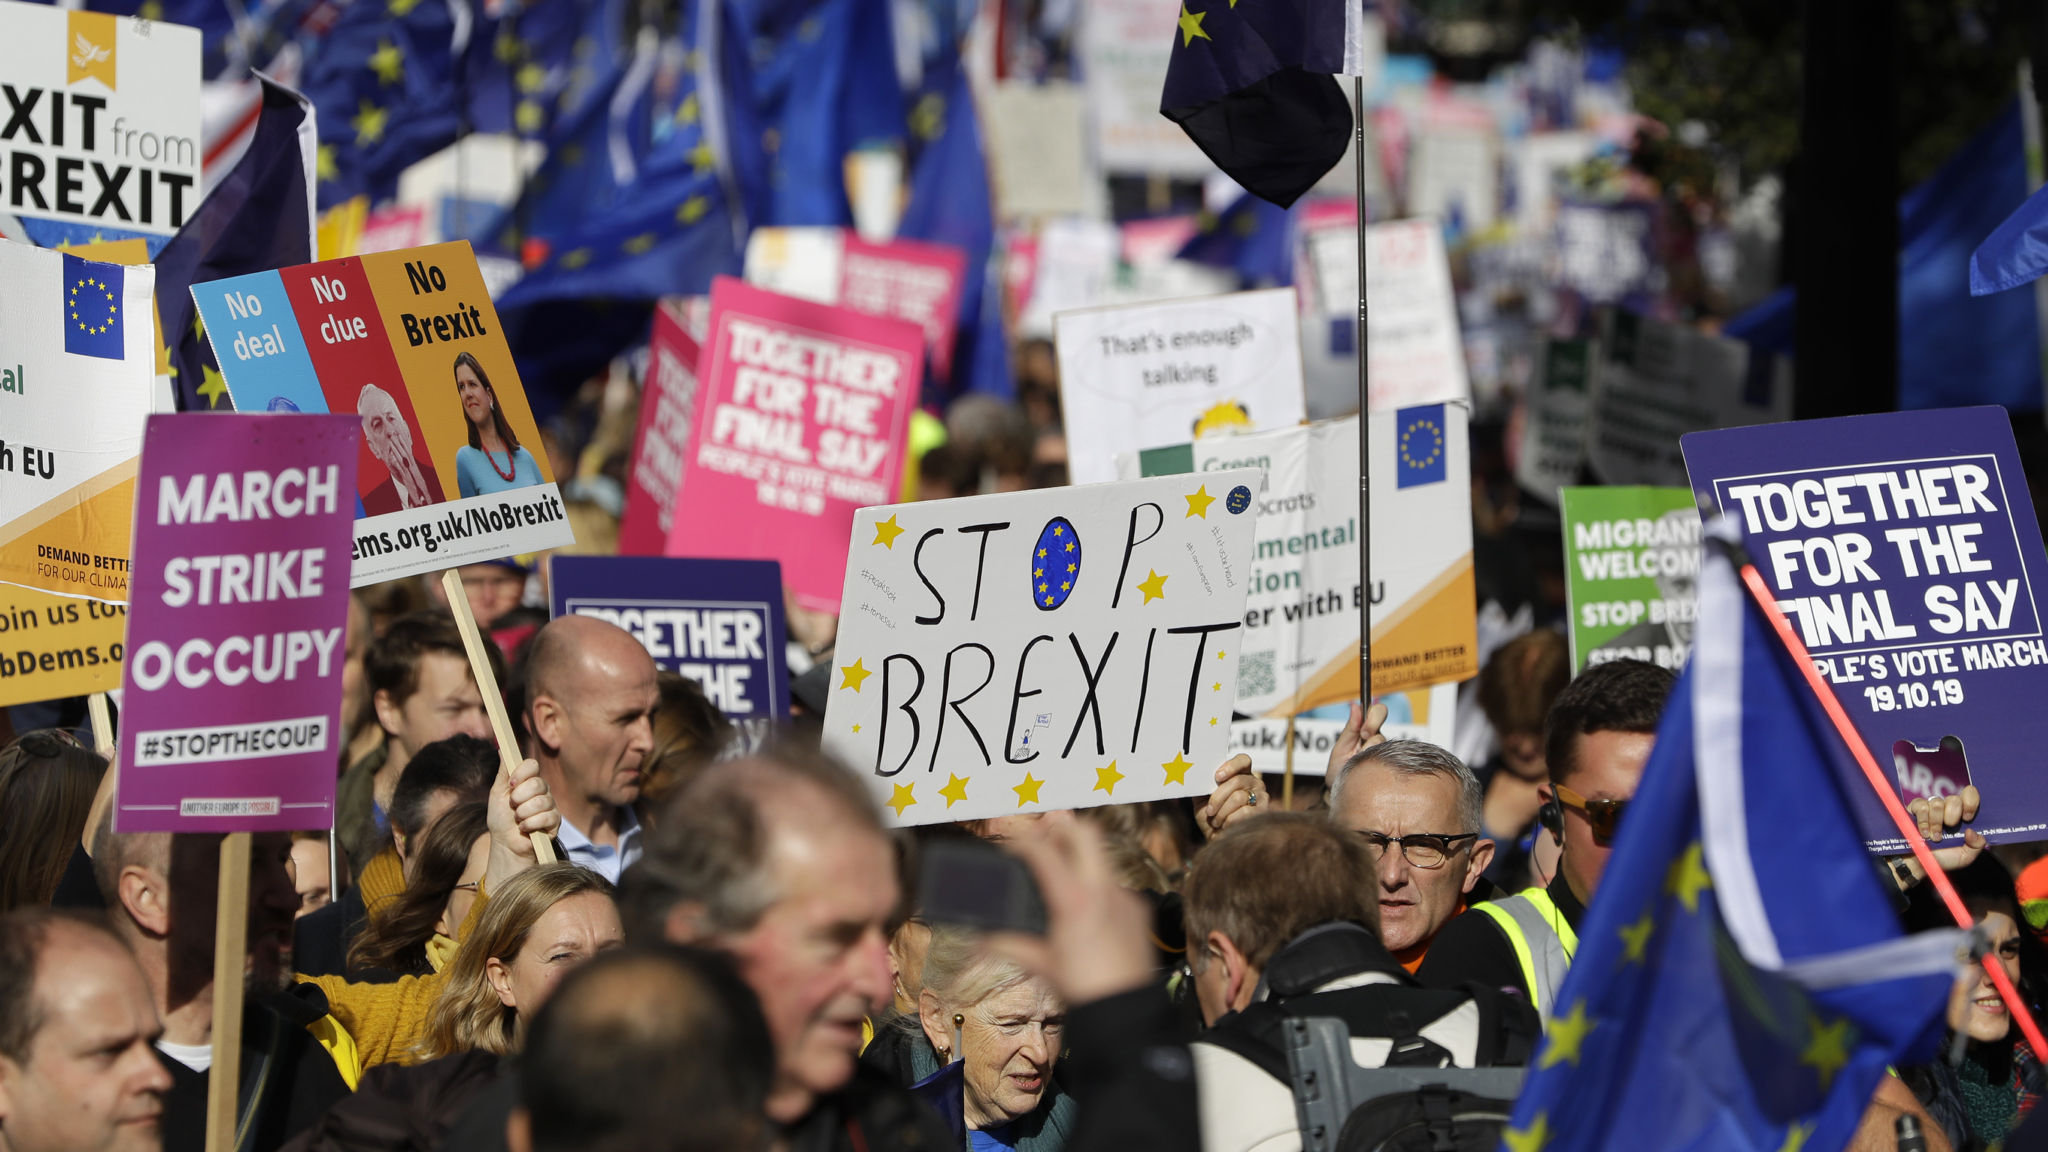 Jubilant protesters cheer on Brexit reprieve